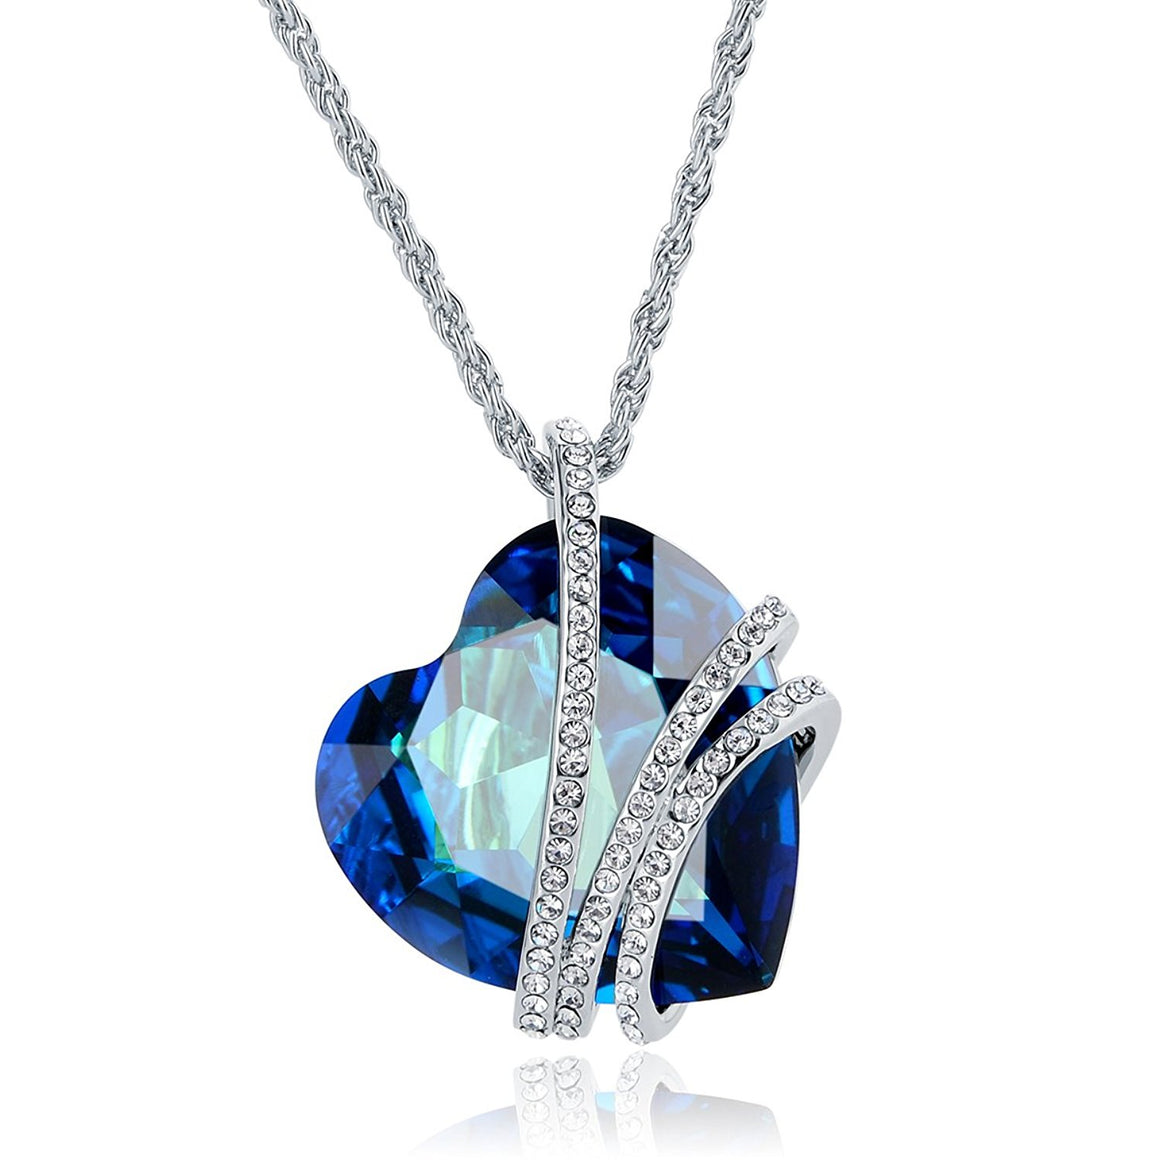 """Blue Heart Shaped Love"" Pendant Necklace Made With Big Crystal of SWAROVSKI"